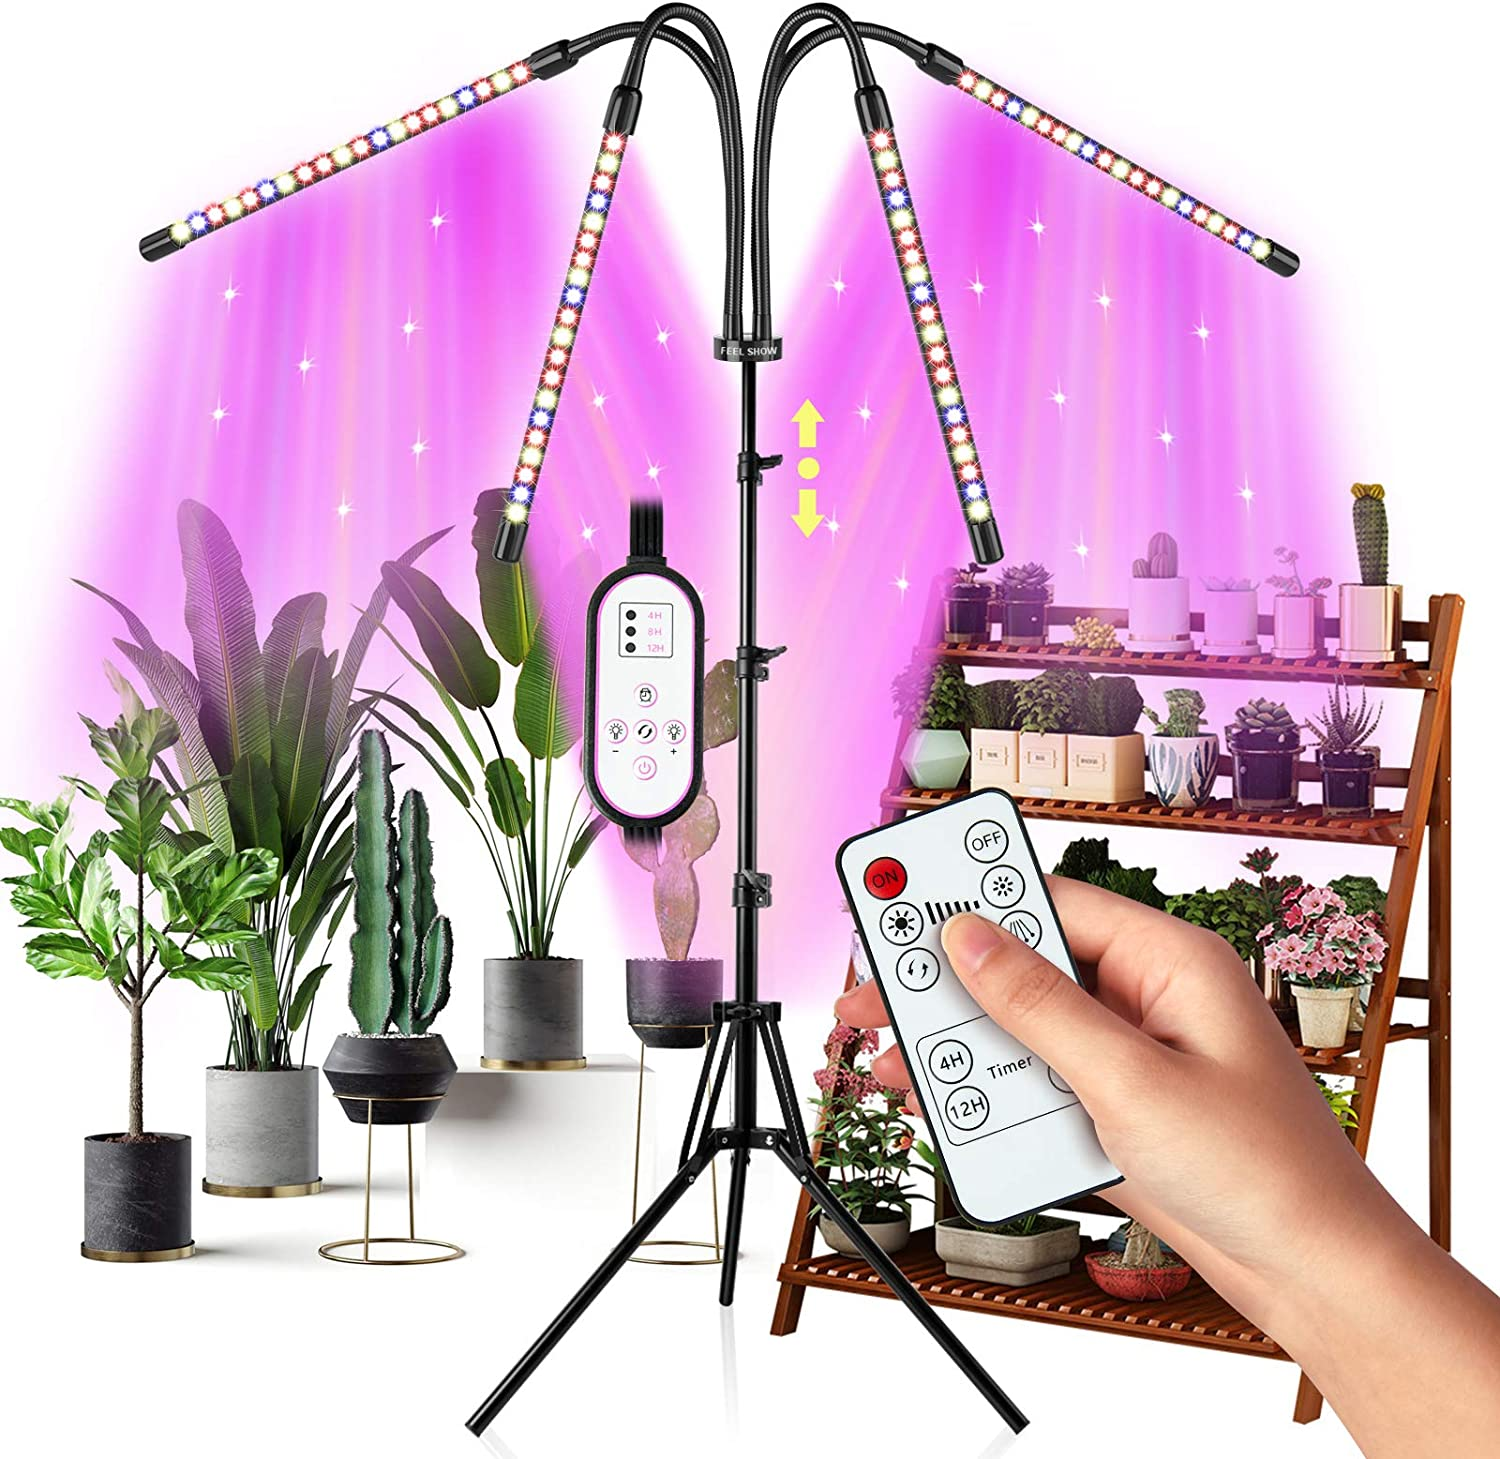 Grow Light for Indoor Plants Full Spectrum, Upgrade 4-Head Plant Lights, Growing Light with 4/8/12H Timer, Tripod Adjustable 15-60inch